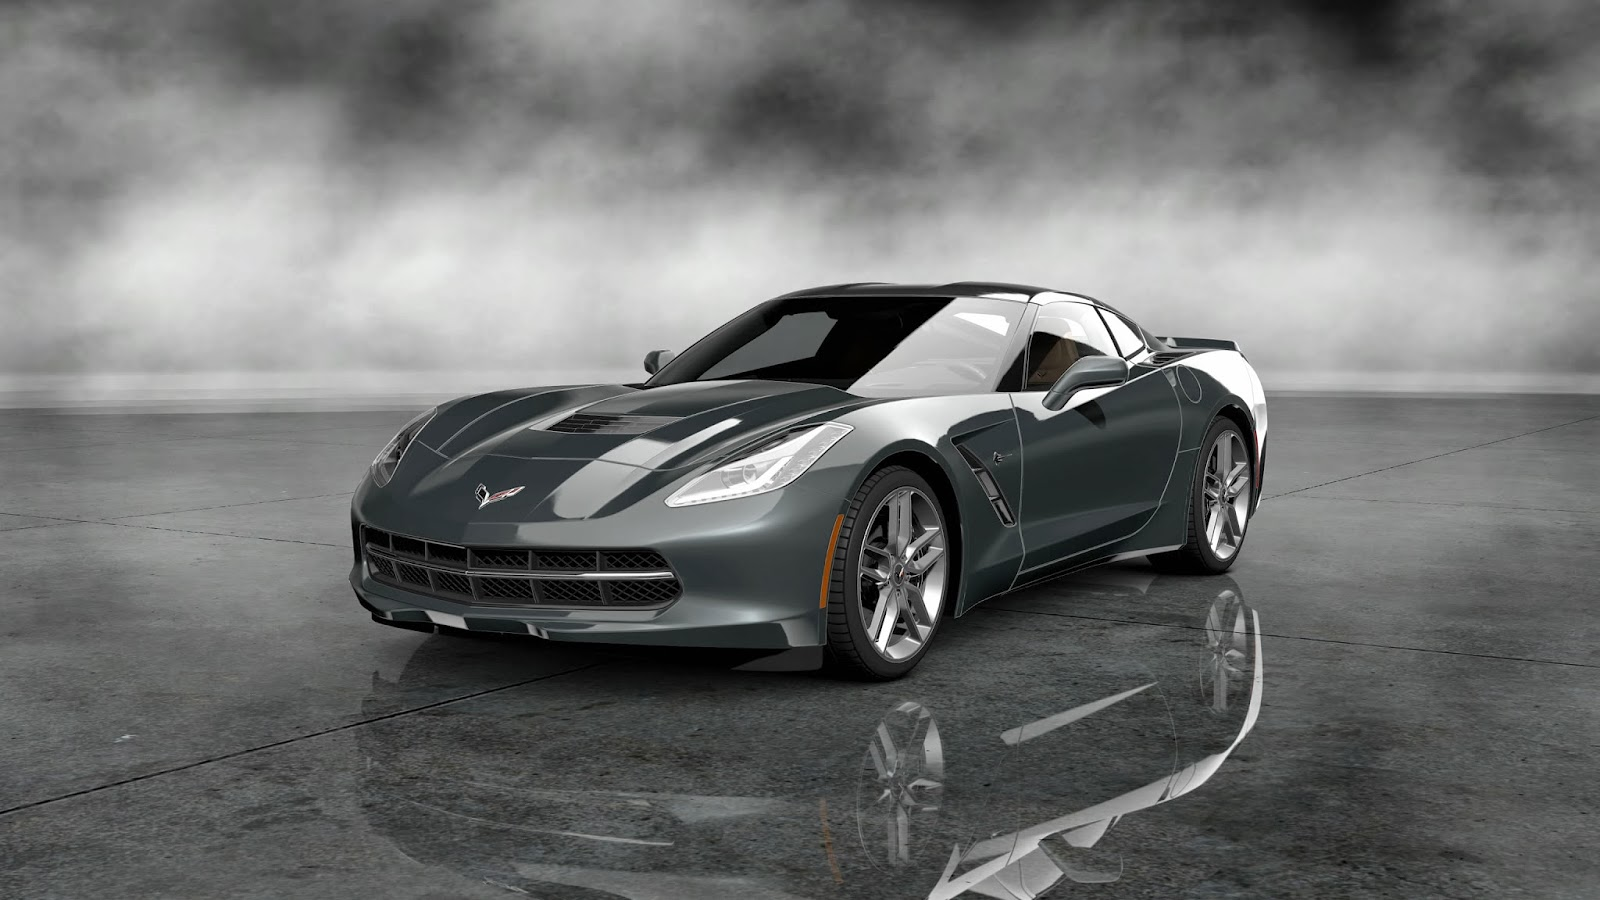 Performance Car of the Year Nominees Include Corvette Stingray